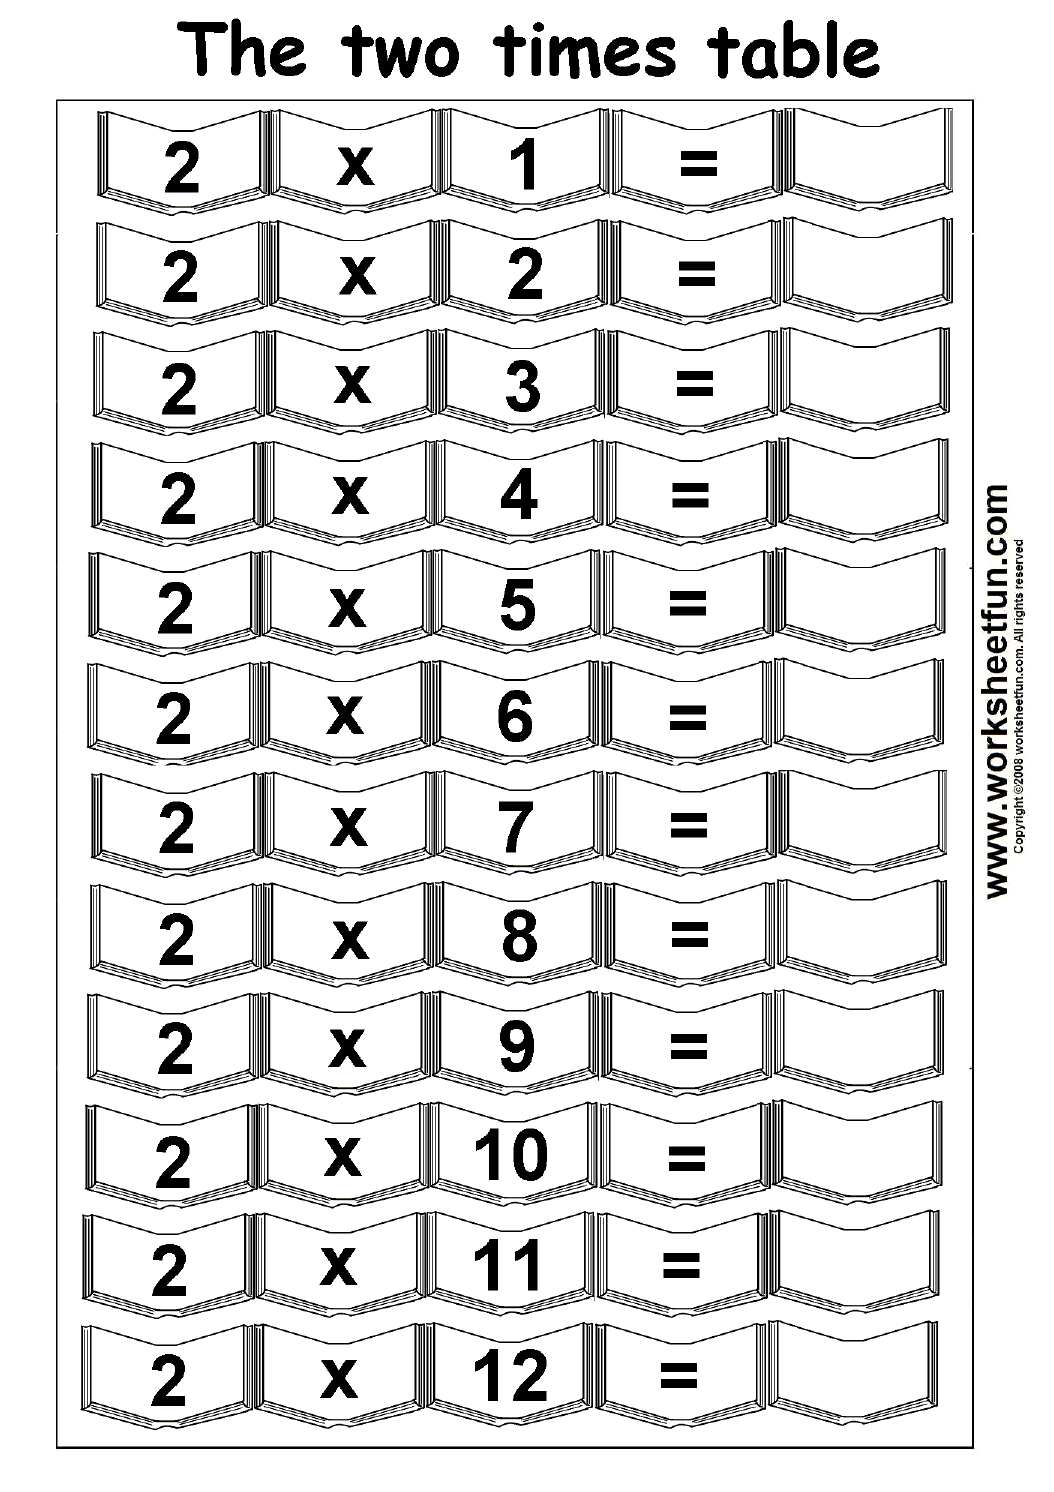 worksheet Two Times Table Worksheet multiplication times tables worksheets 2 3 4 5 table